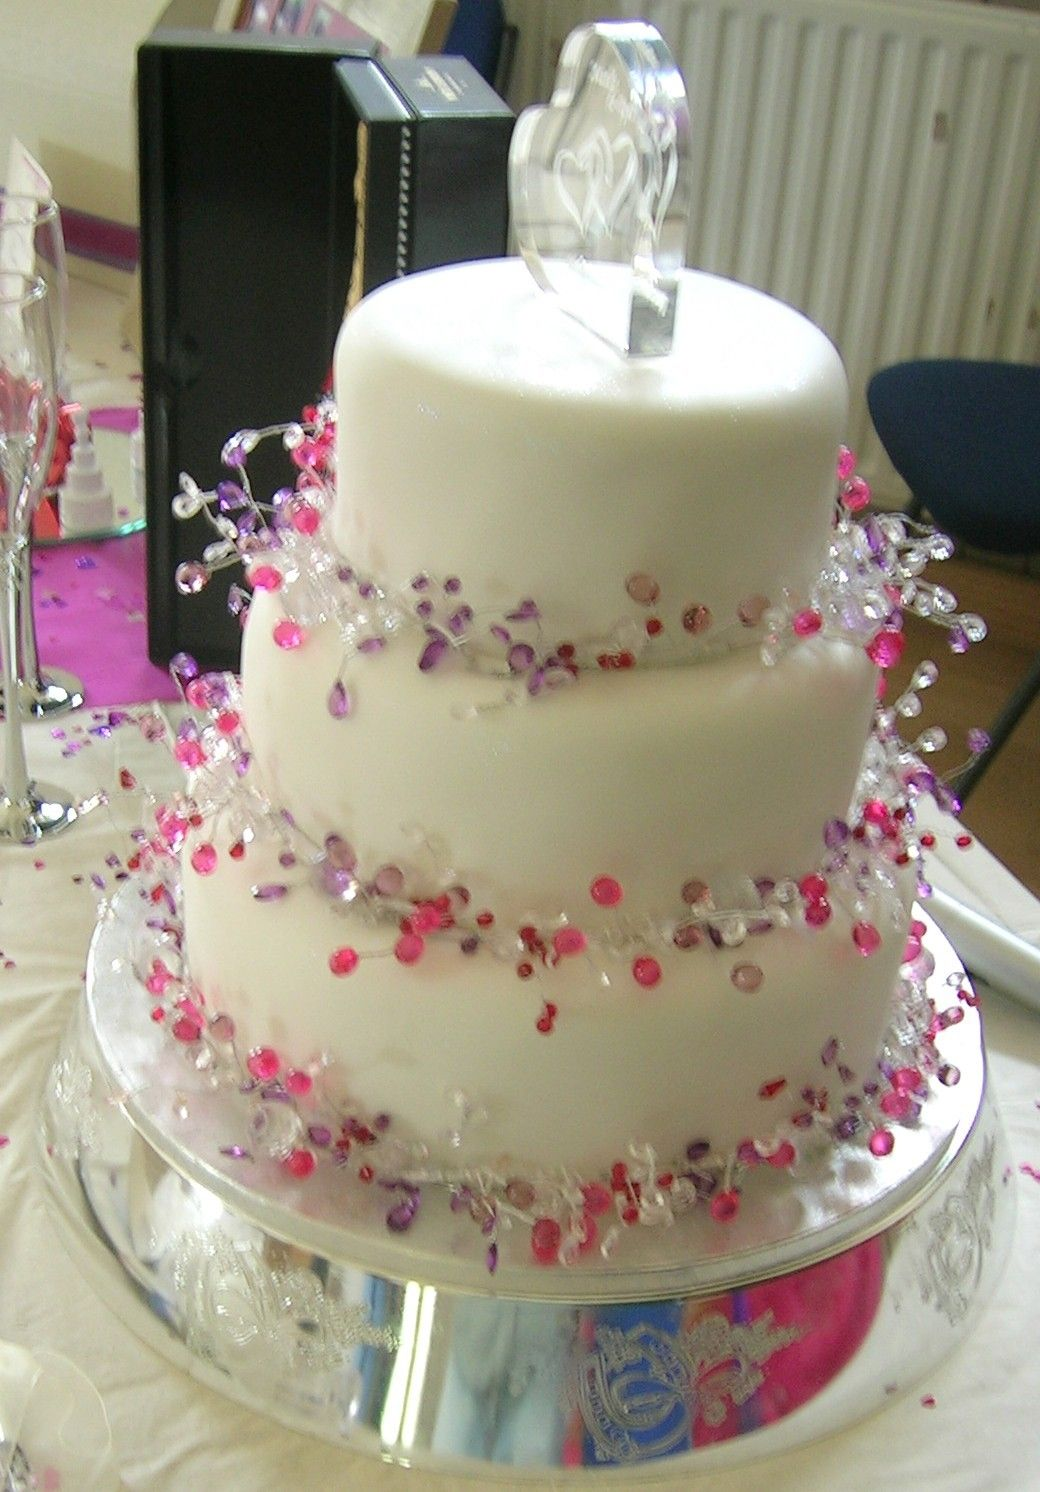 plain wedding cakes cheap wedding cakes cupcake wedding cakes elegant wedding cakes cakes and cupcakes special - Wedding Cake Design Ideas